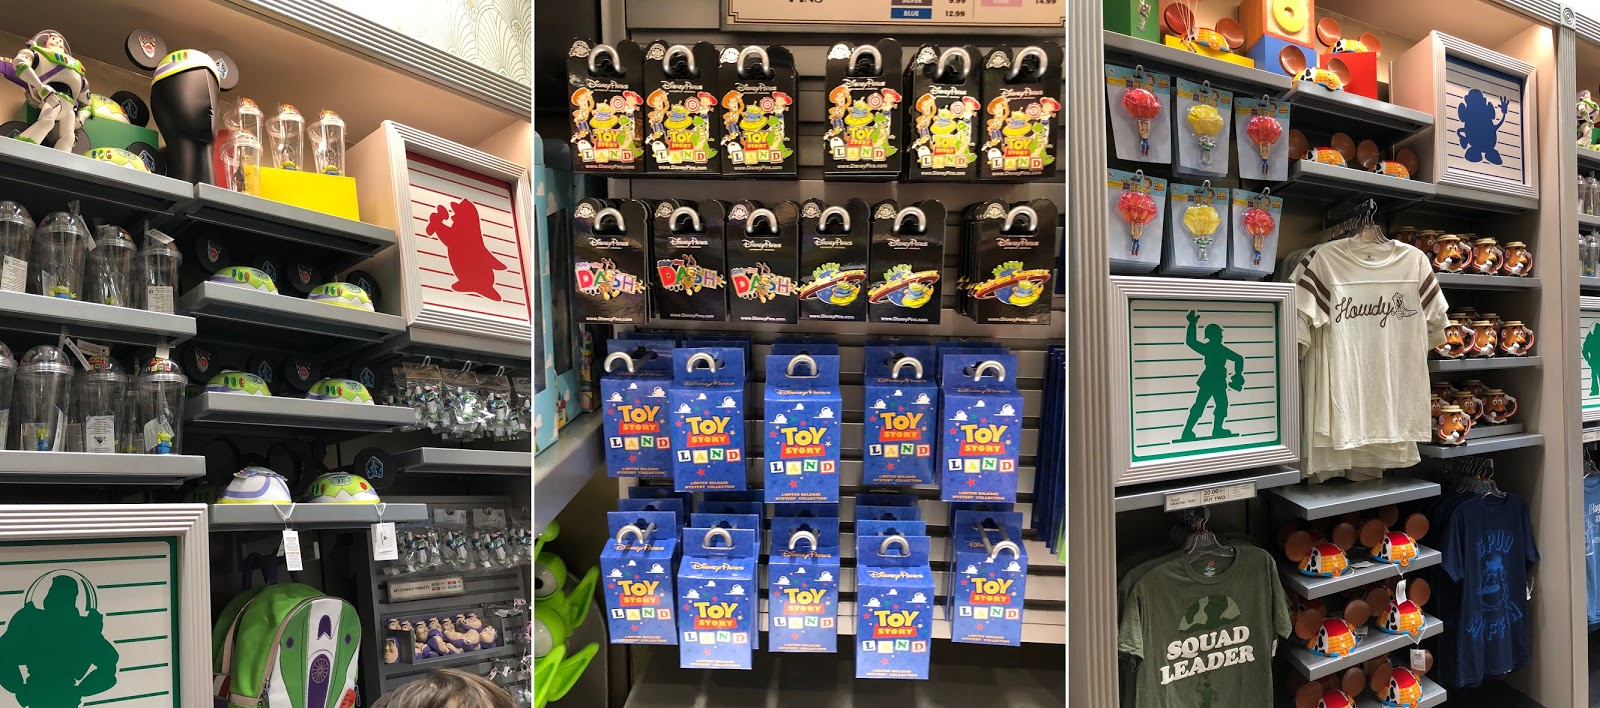 Toy Story Land Merchandise Allows Guests To Relive The Magic And